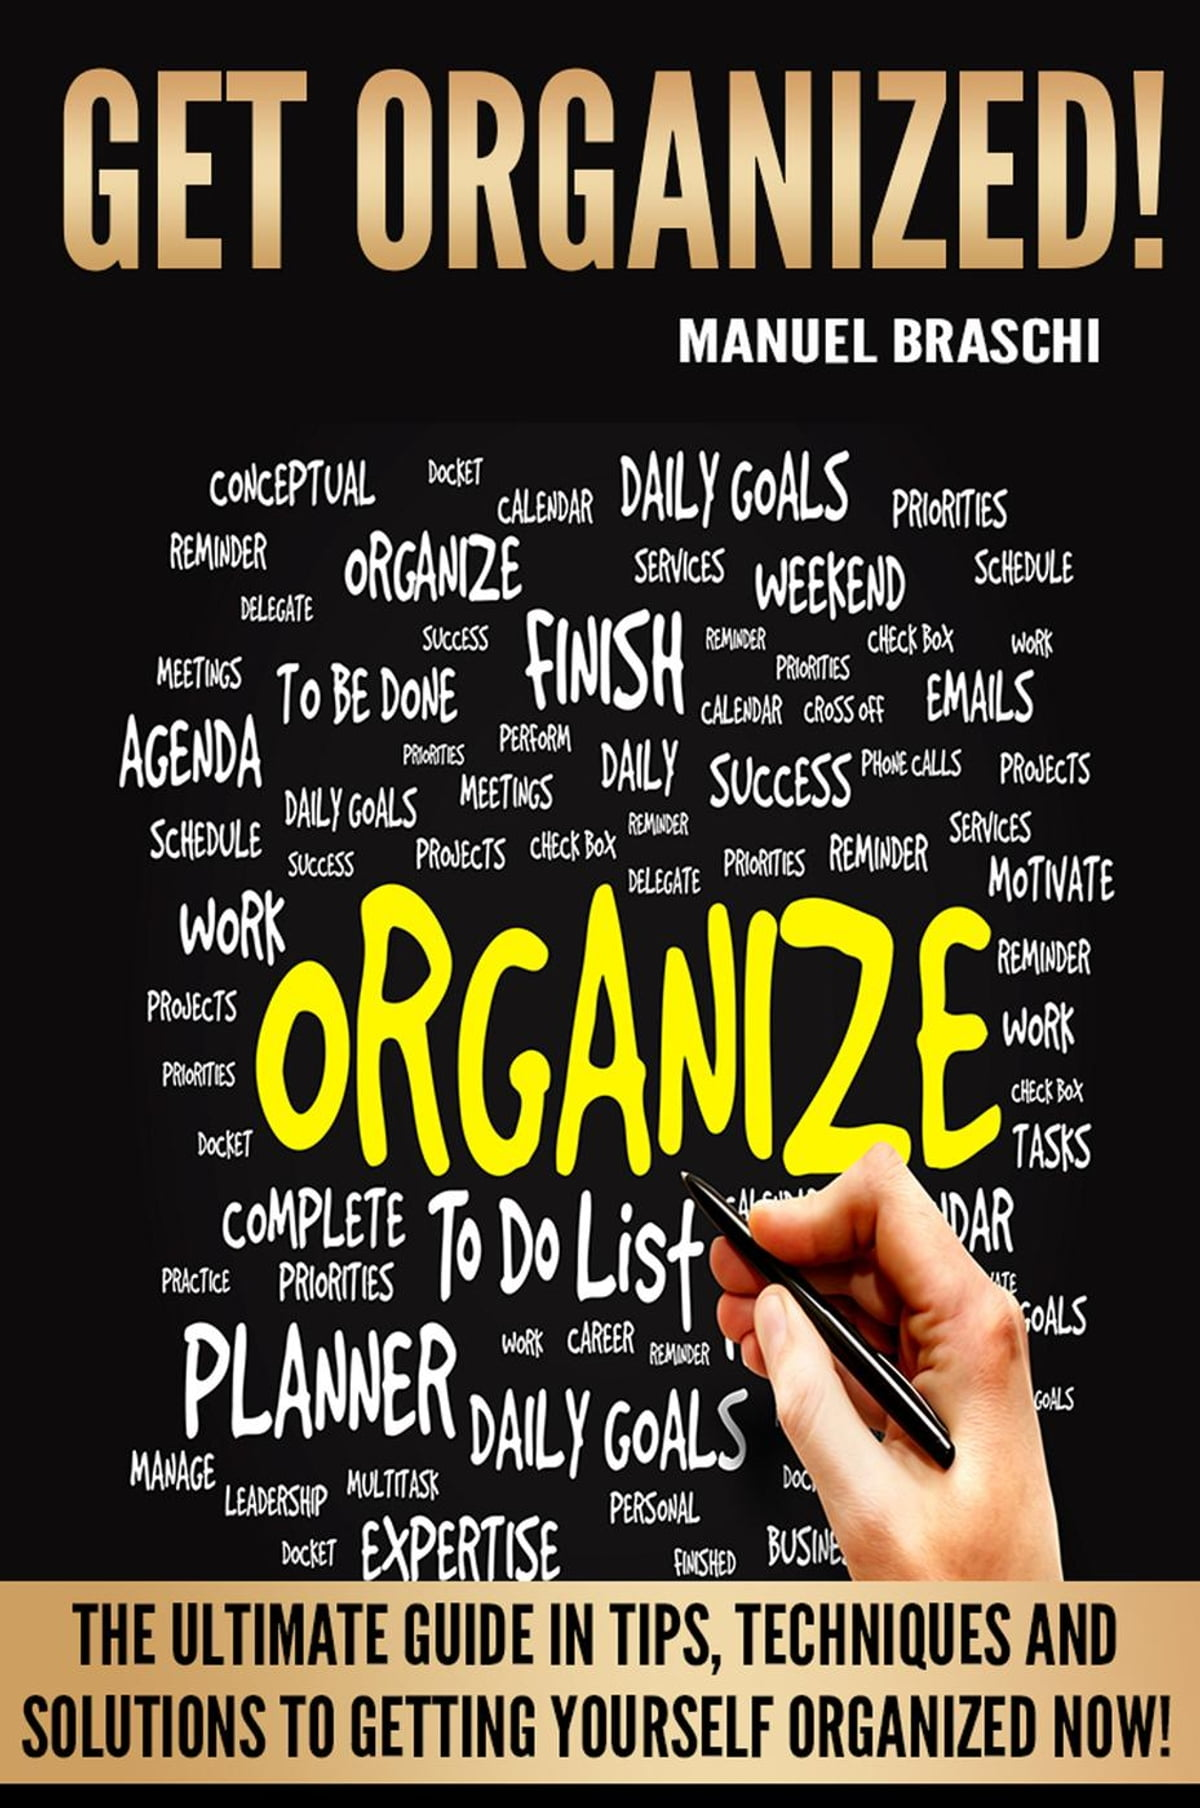 Get Organized: The Ultimate Guide In Tips, Techniques And Solutions To  Getting Yourself Organized Now! eBook by Manuel Braschi - 9781386421962 |  Rakuten ...